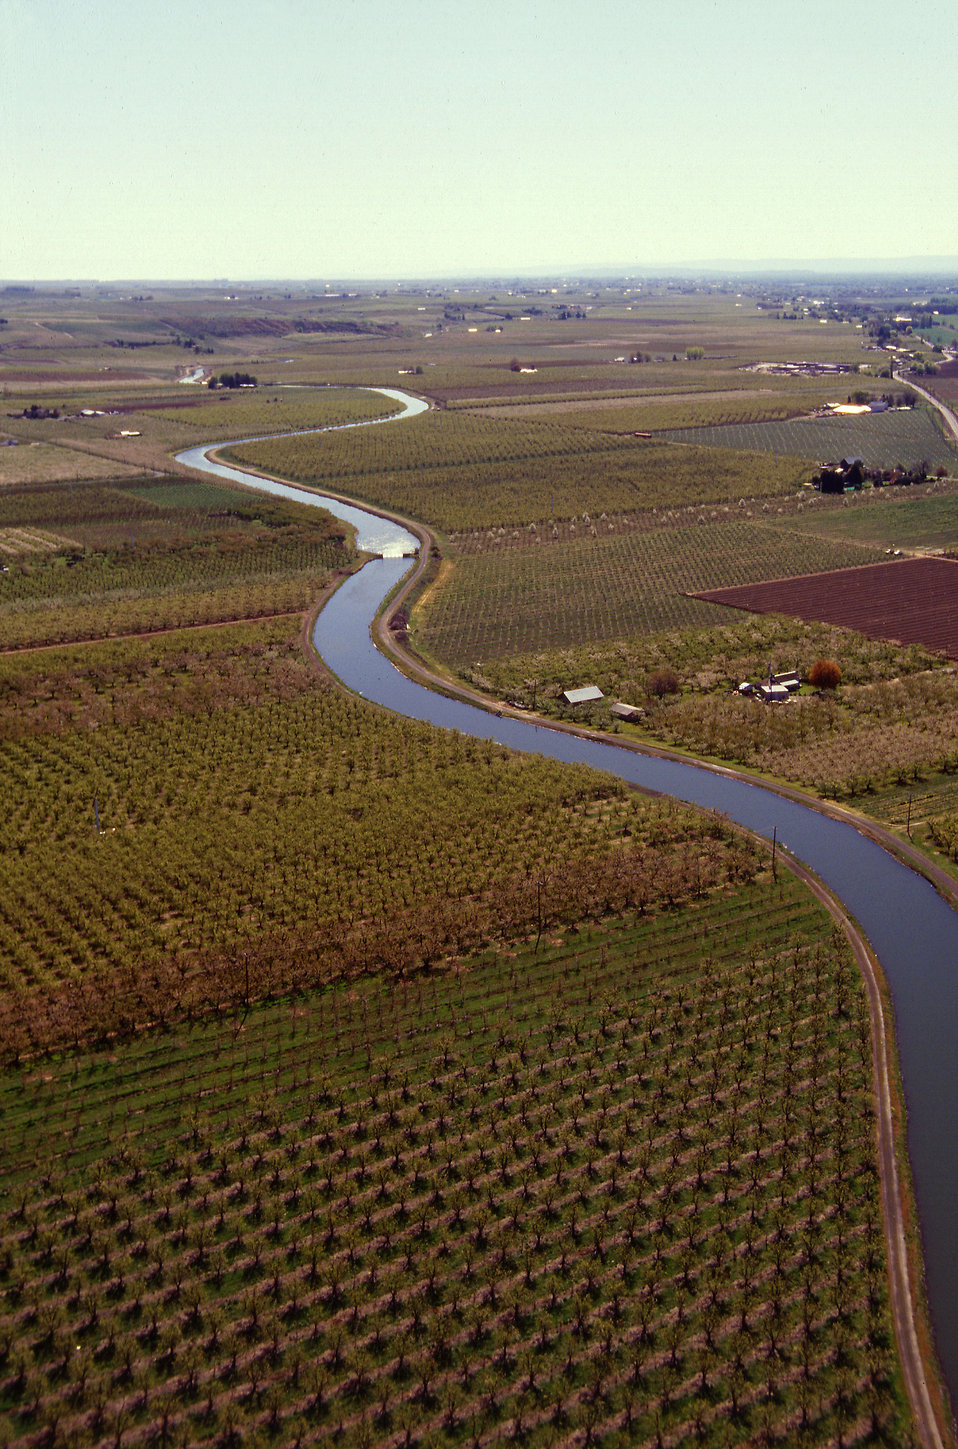 Aerial view of apple and pear orchards : Free Stock Photo